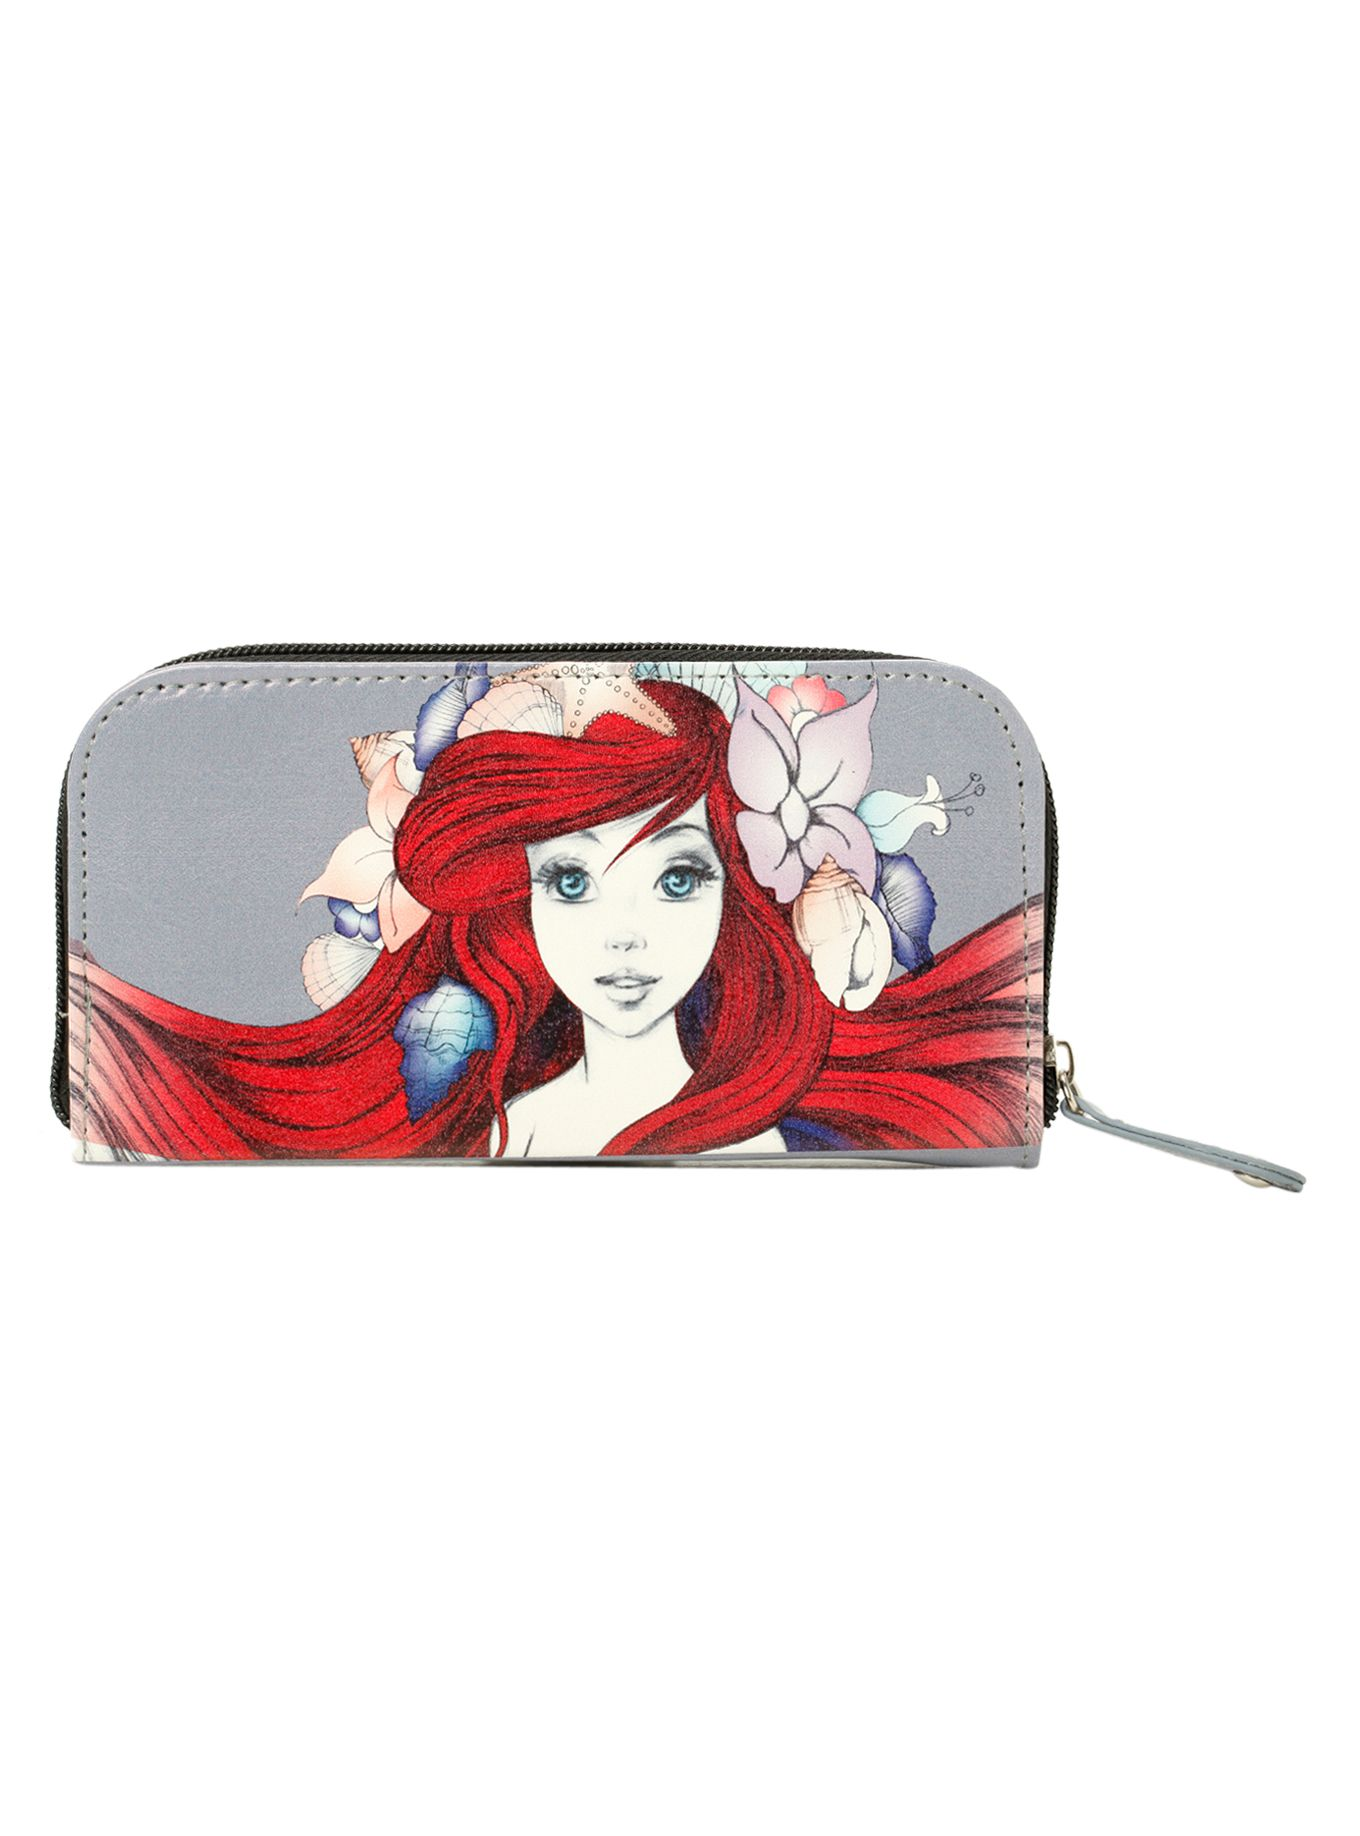 Disney The Little Mermaid Cosmetic Brush Set Hot Topic